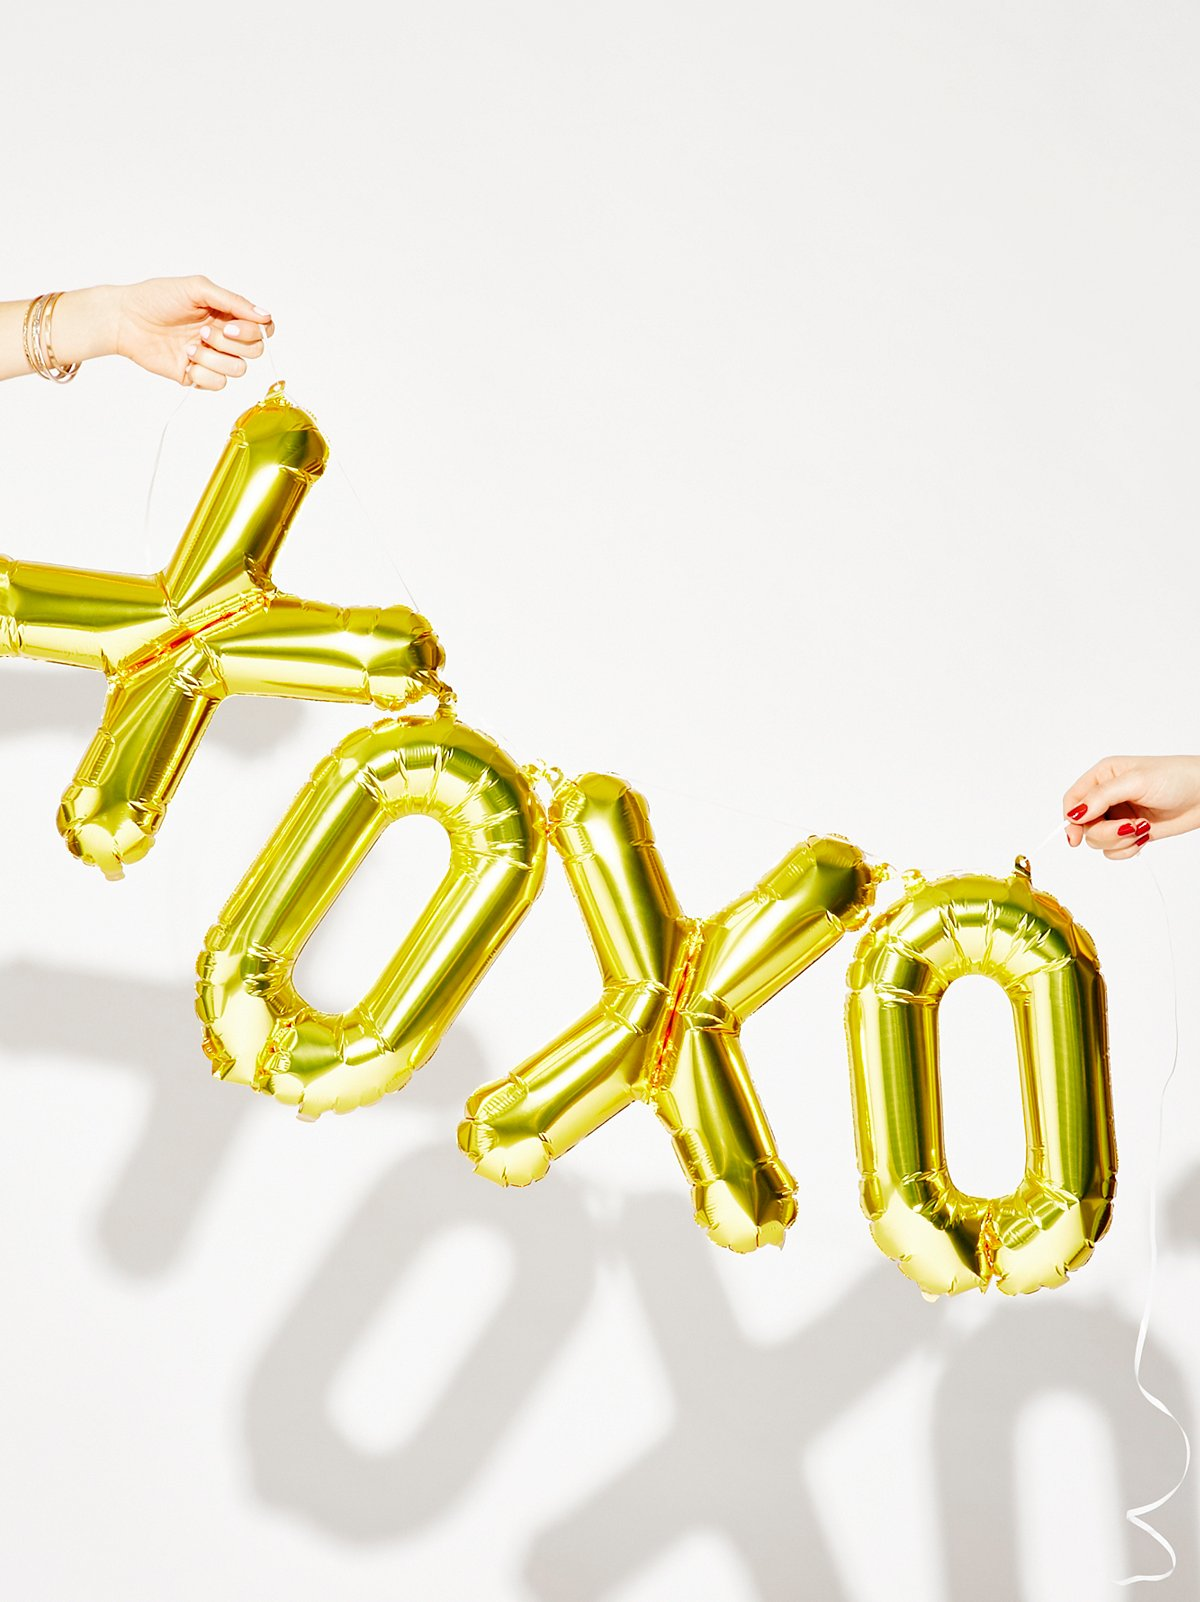 xoxo Metallic Ballons